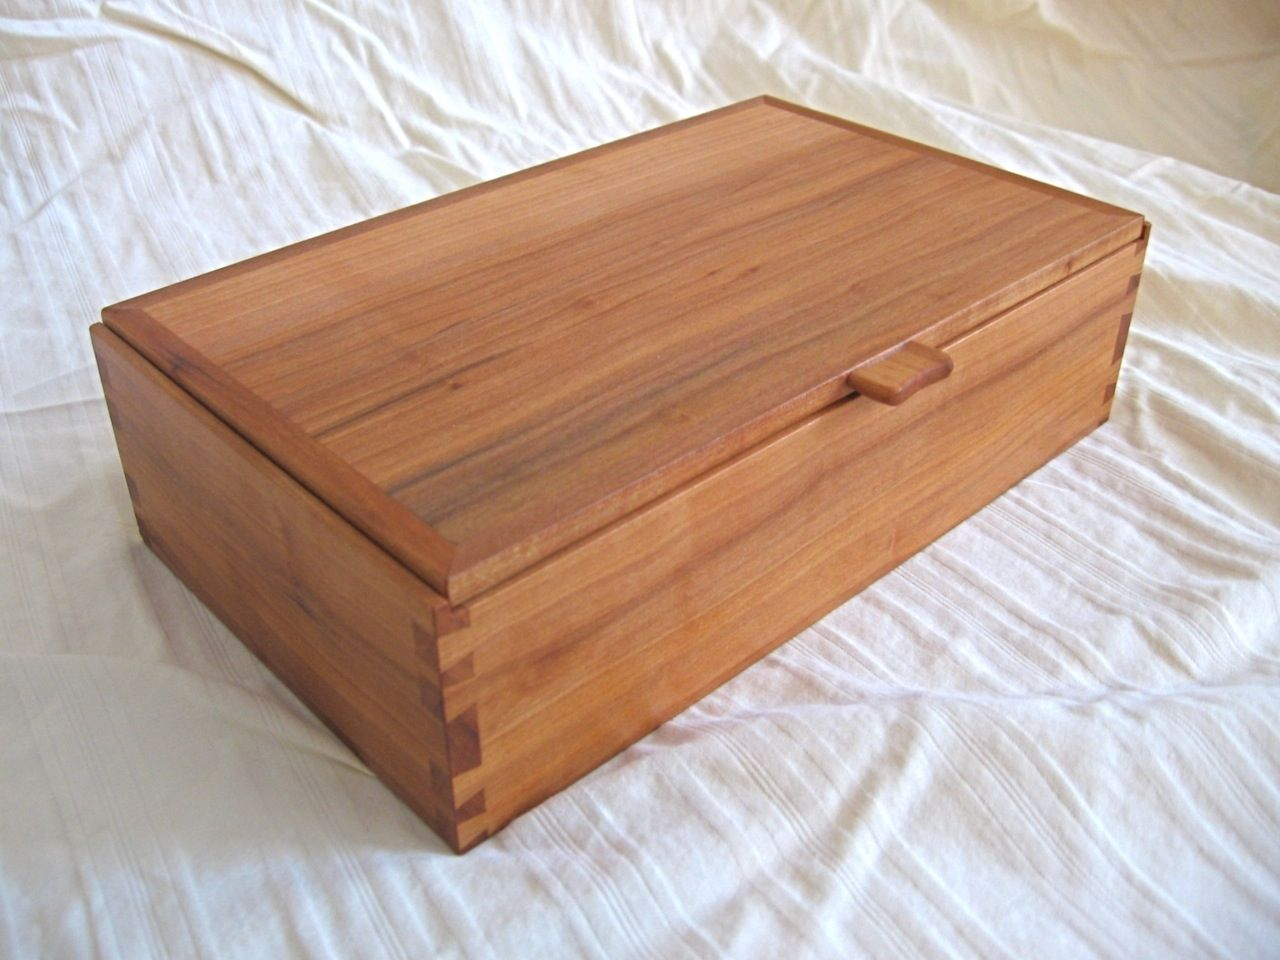 Custom Made Dovetailed Box By Scott King Furniture